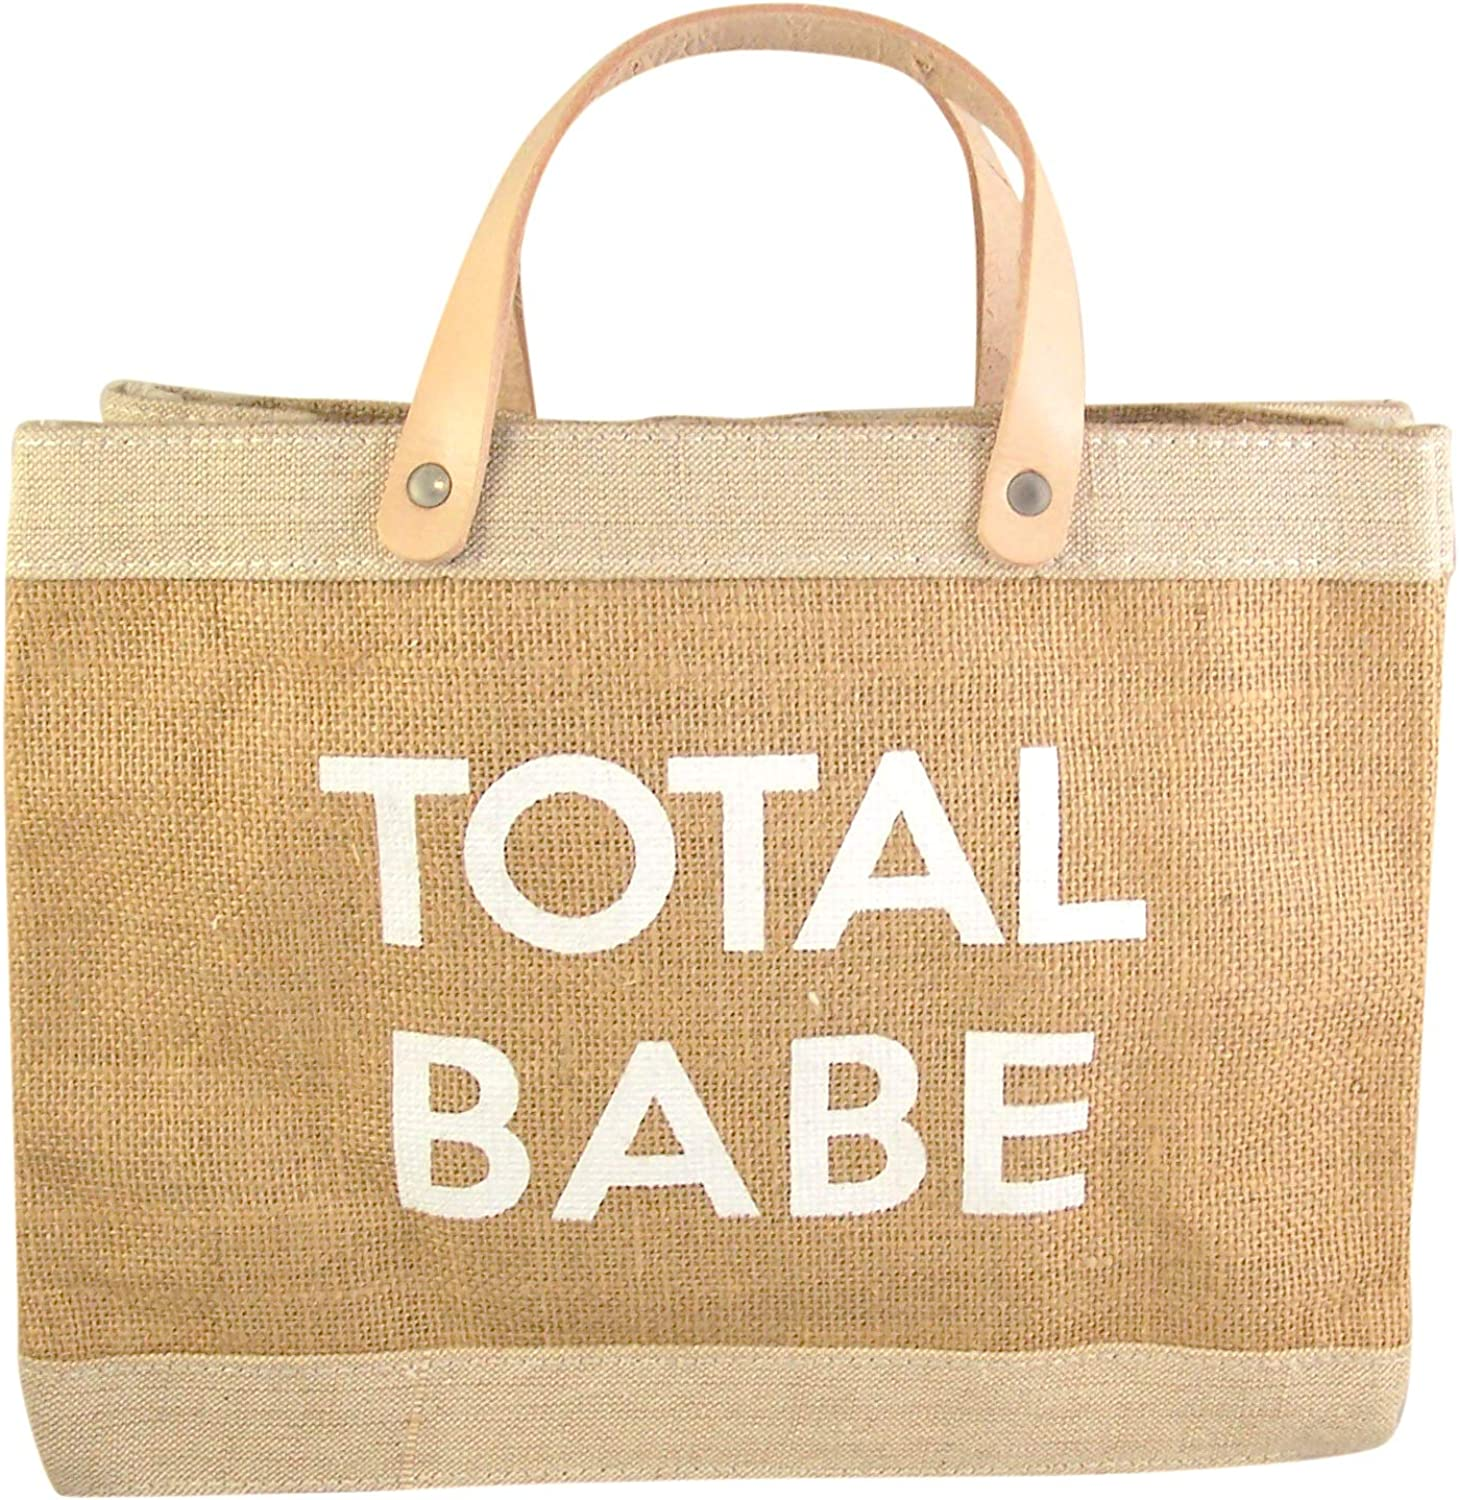 Total Babe Farmer's Market Mini Tote Bag with Genuine Leather Handles, 12 1 2 Inch